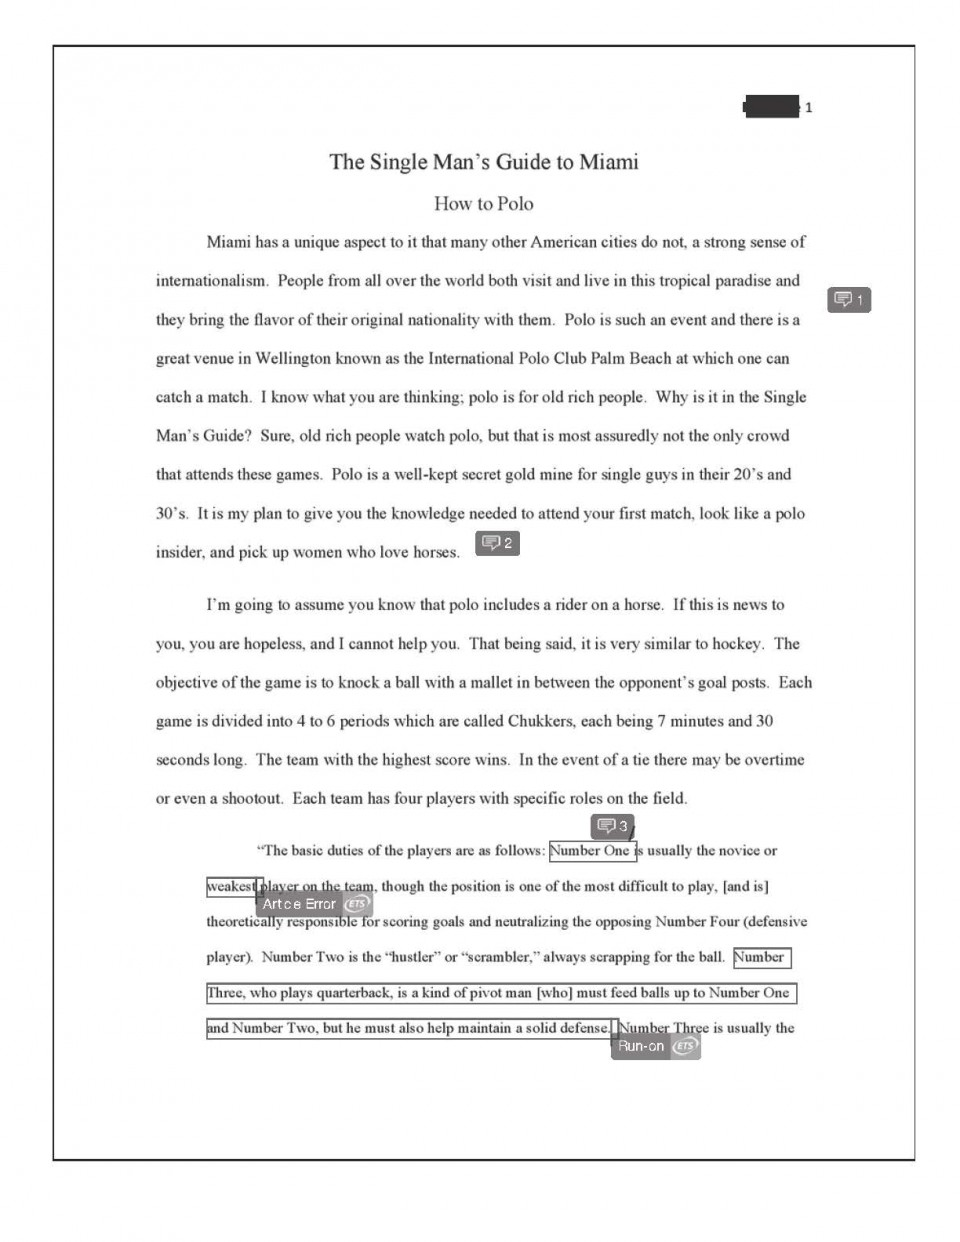 005 Informative Essay Topics Essays Sample Funny Argumentative For Middle School Final How To Polo Redacted P College Students Hilarious Good Remarkable Expository 5th Grade Paper Prompts 960